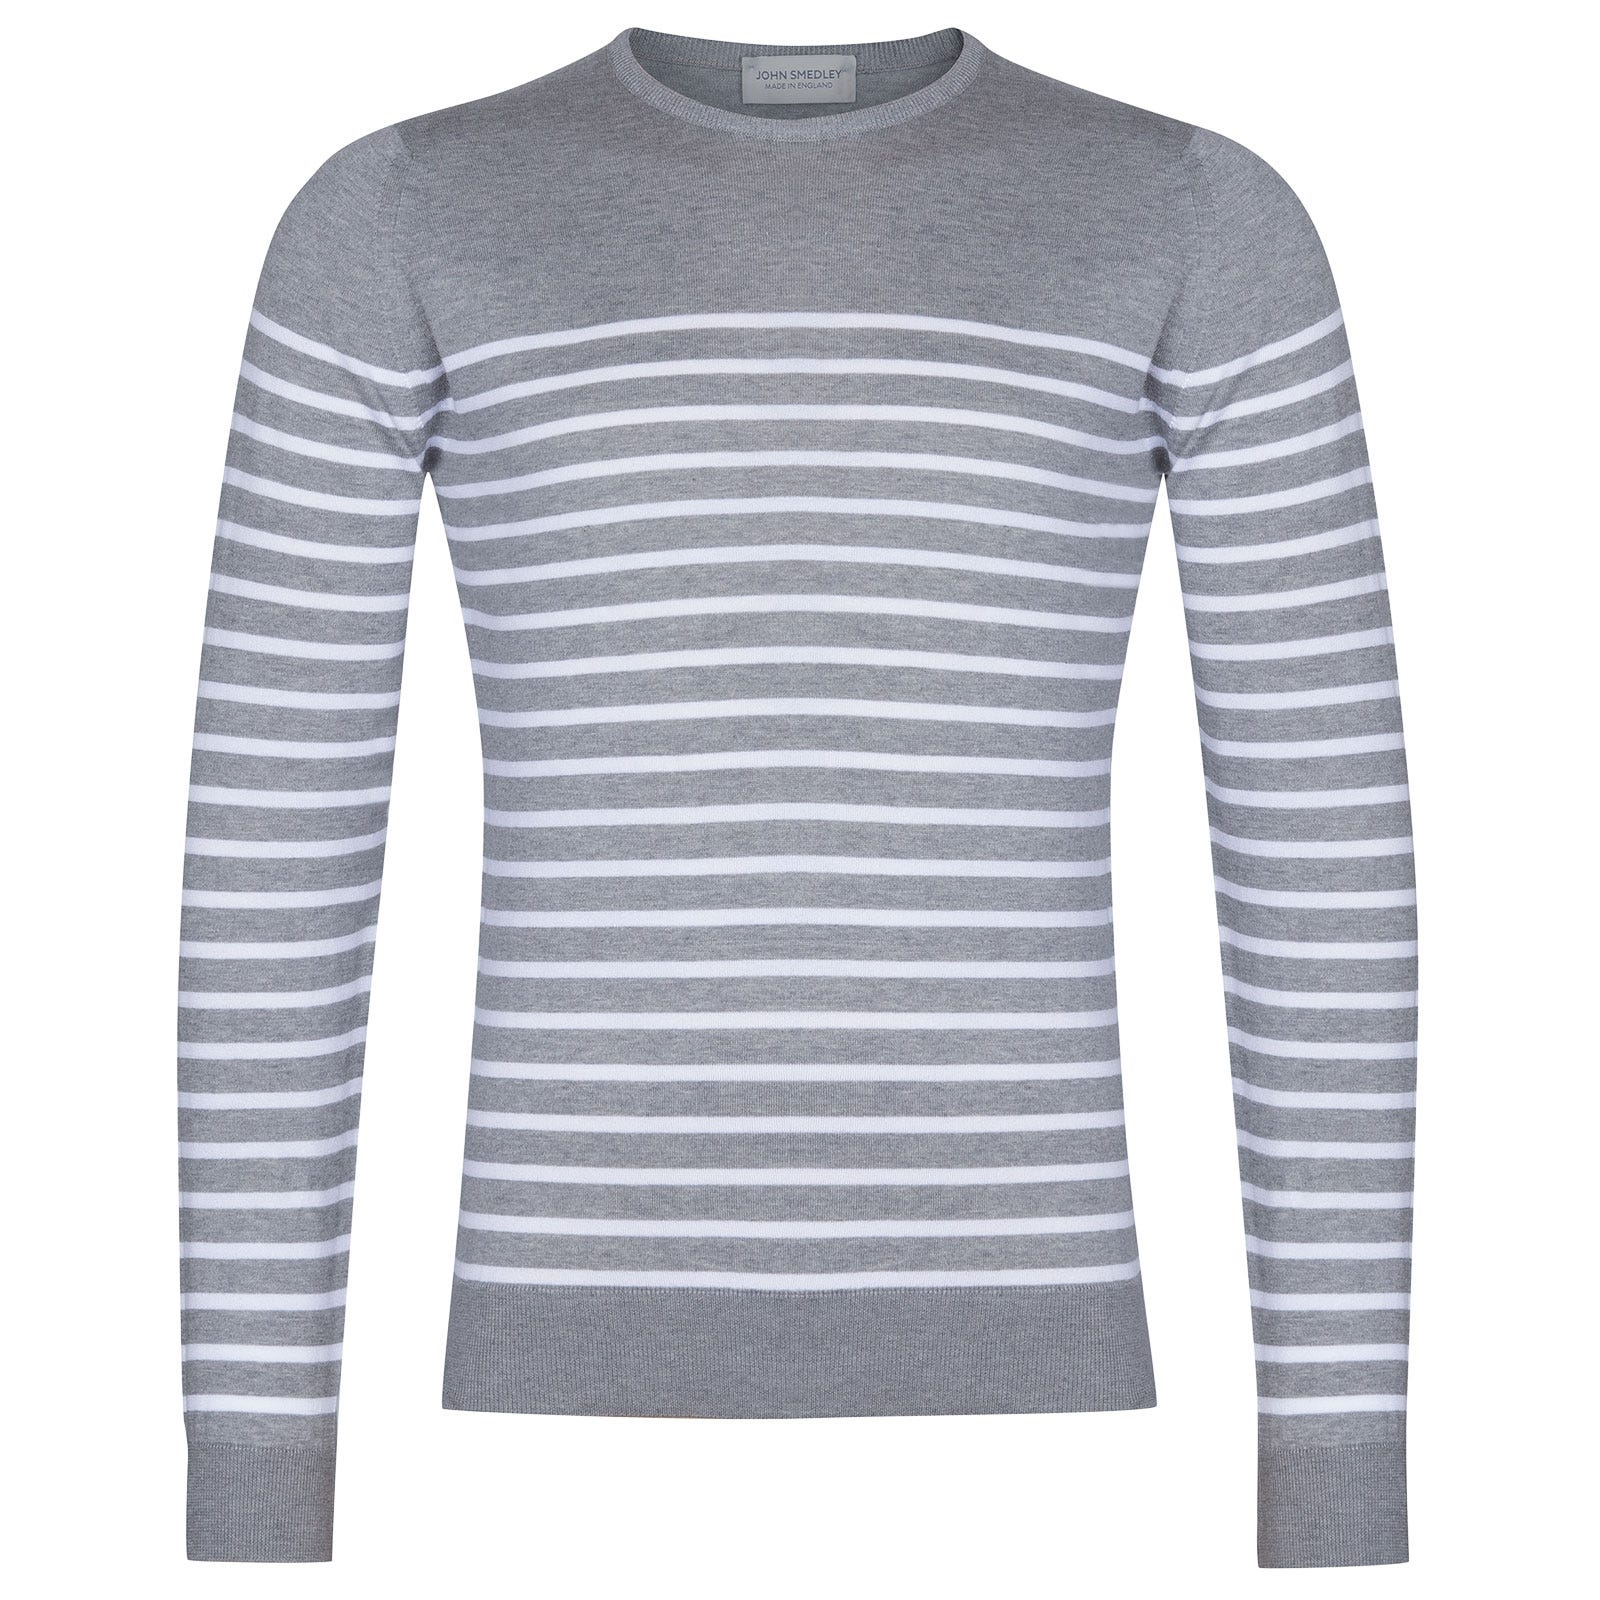 John Smedley Redfree Sea Island Cotton Pullover in Silver-XL